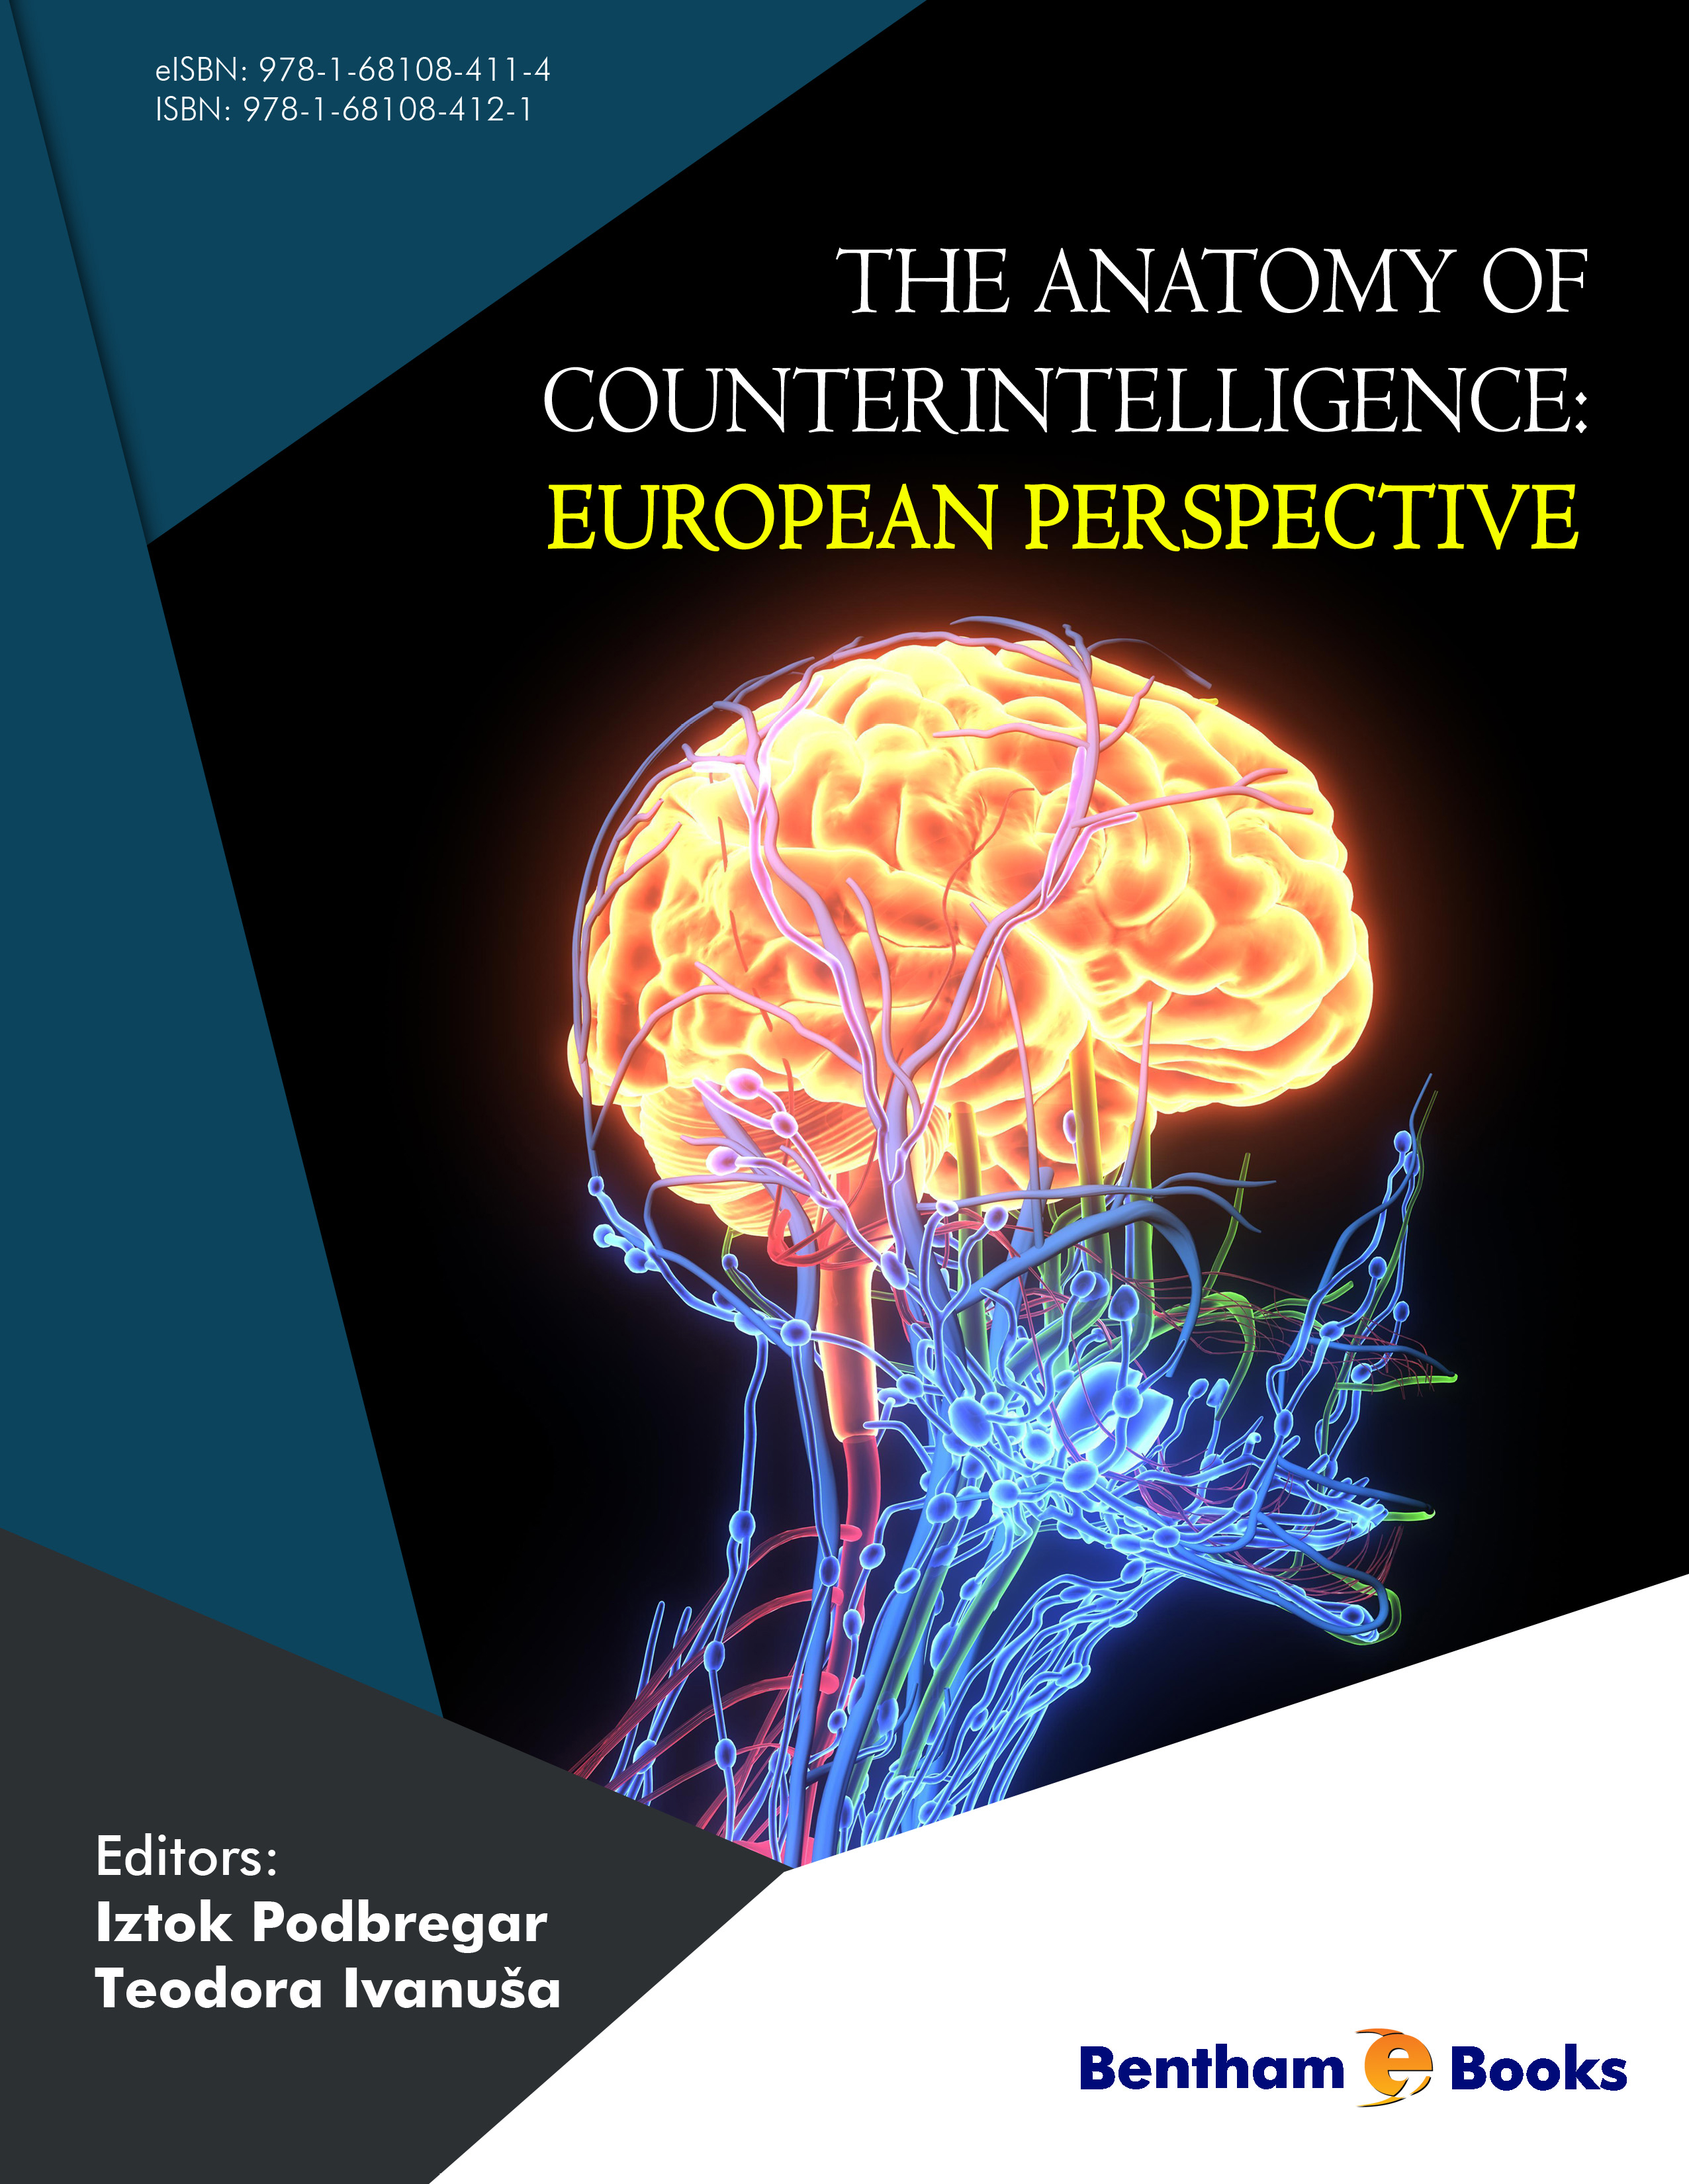 The Anatomy of Counterintelligence: European Perspective